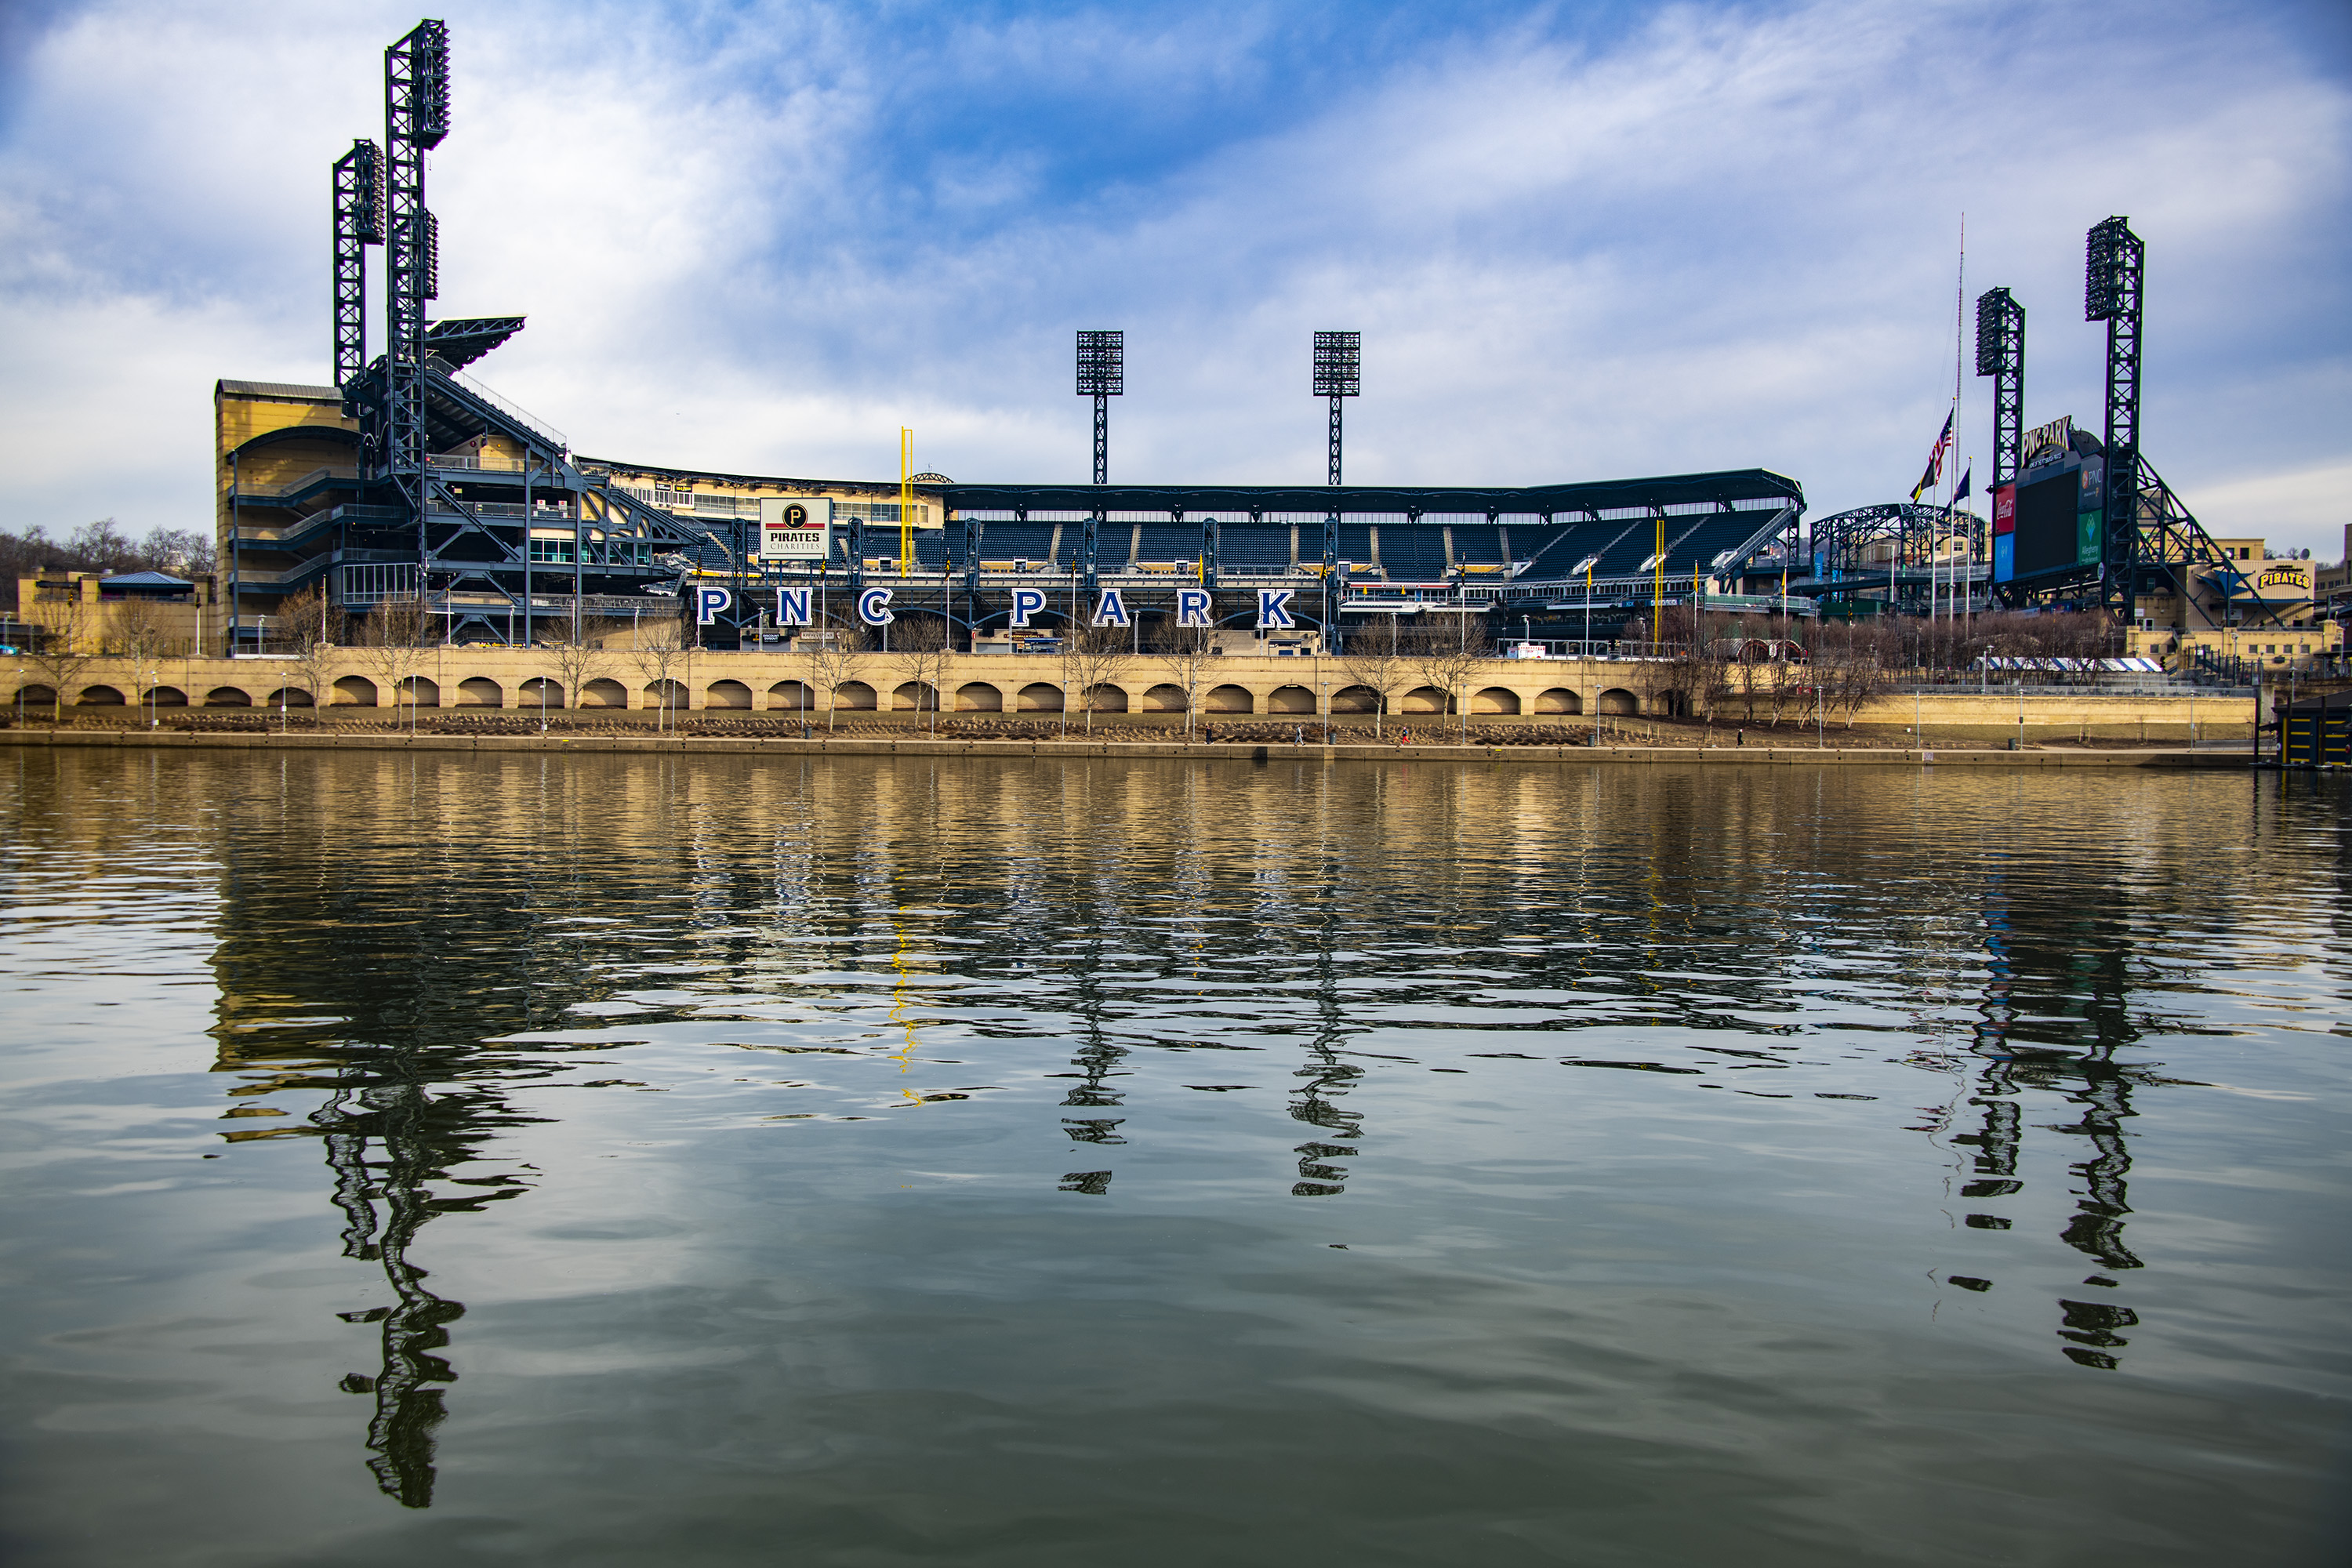 PNC PARK-Opening Day